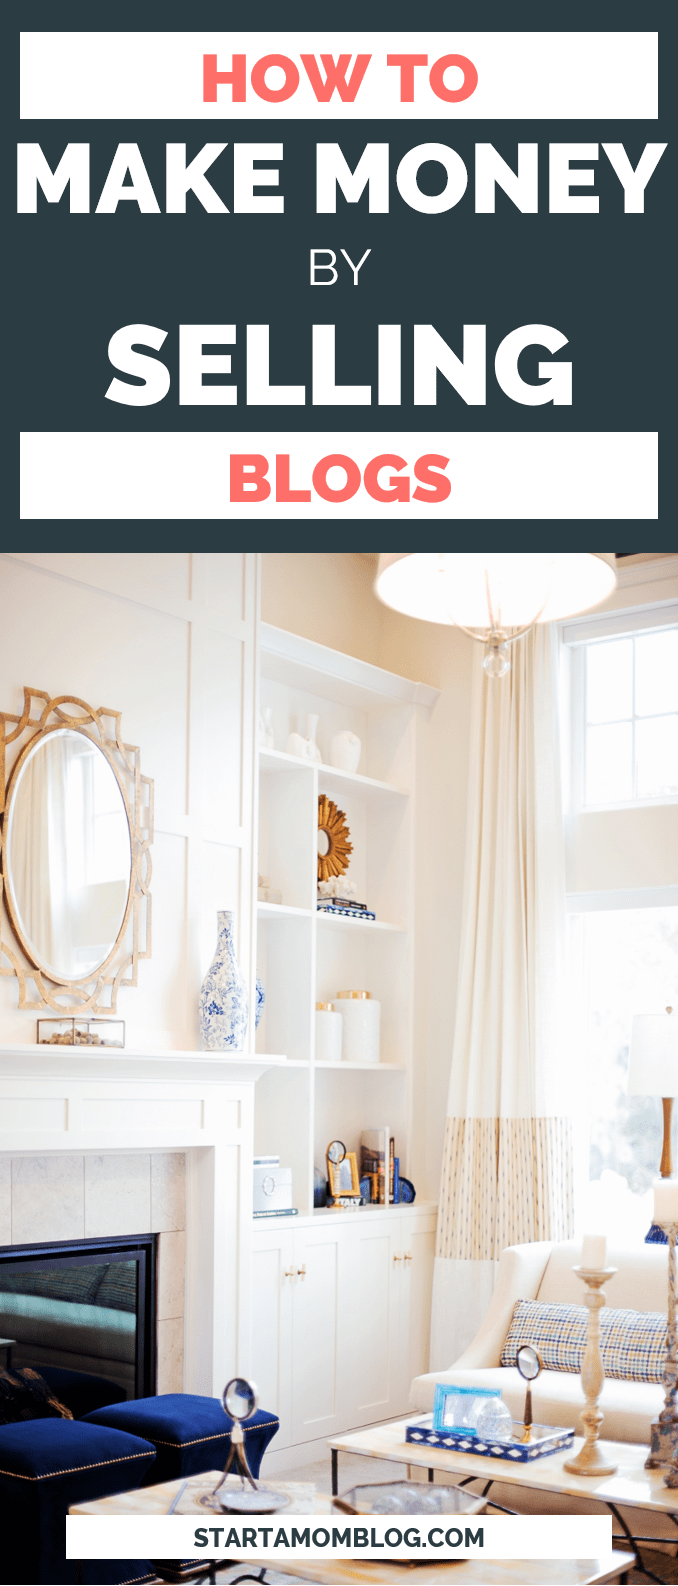 How to make money by selling blogs mom blogger 1